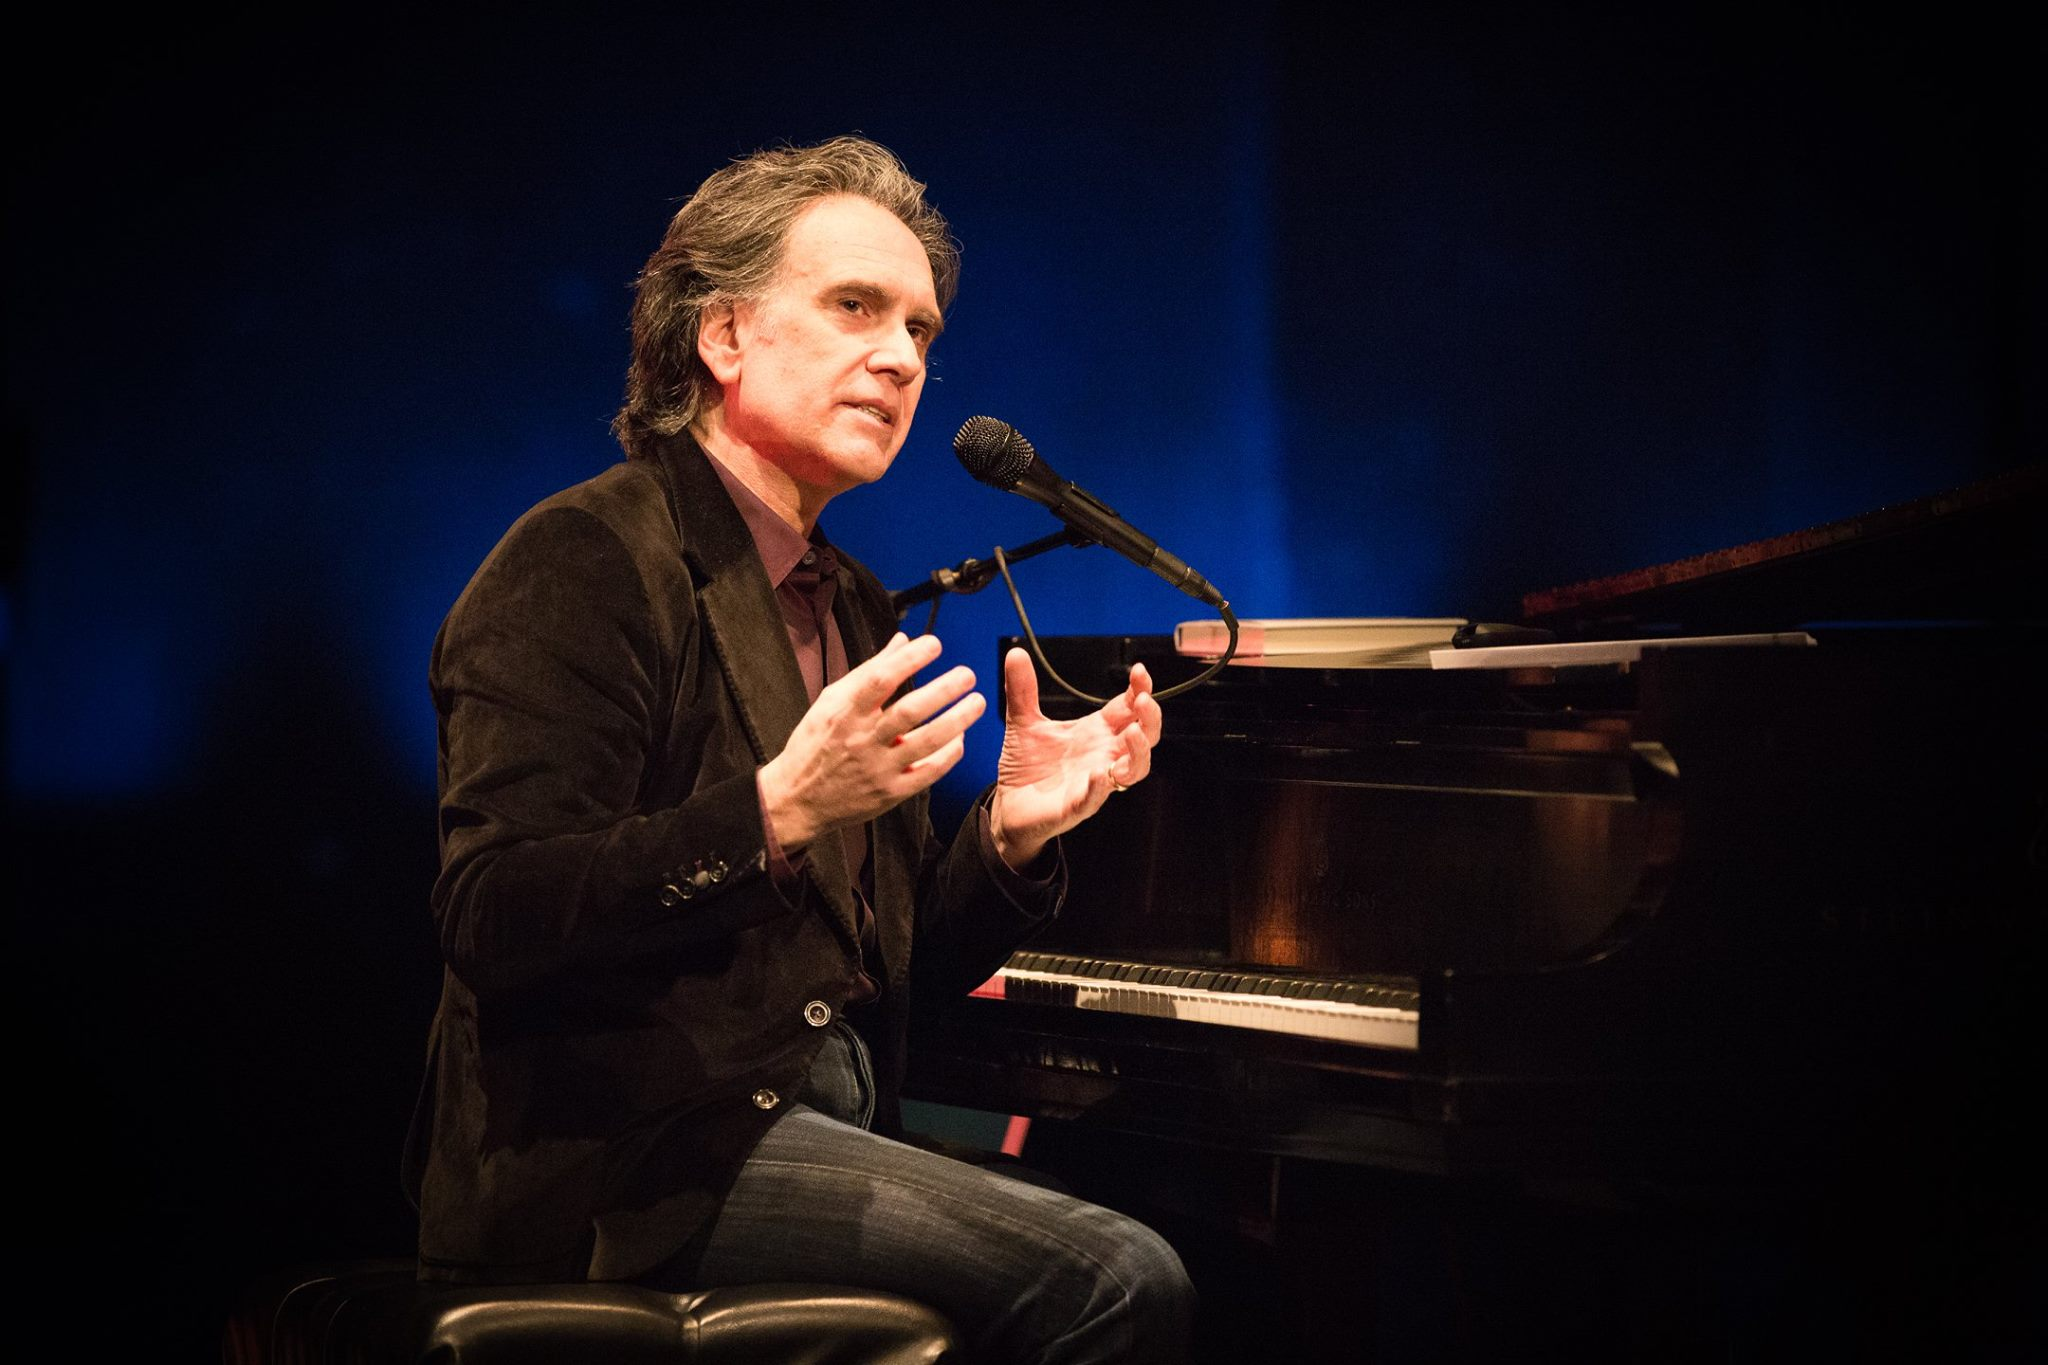 Peter Buffett is bringing his gifts of music, conversation and insight to United Way and the communities we serve.